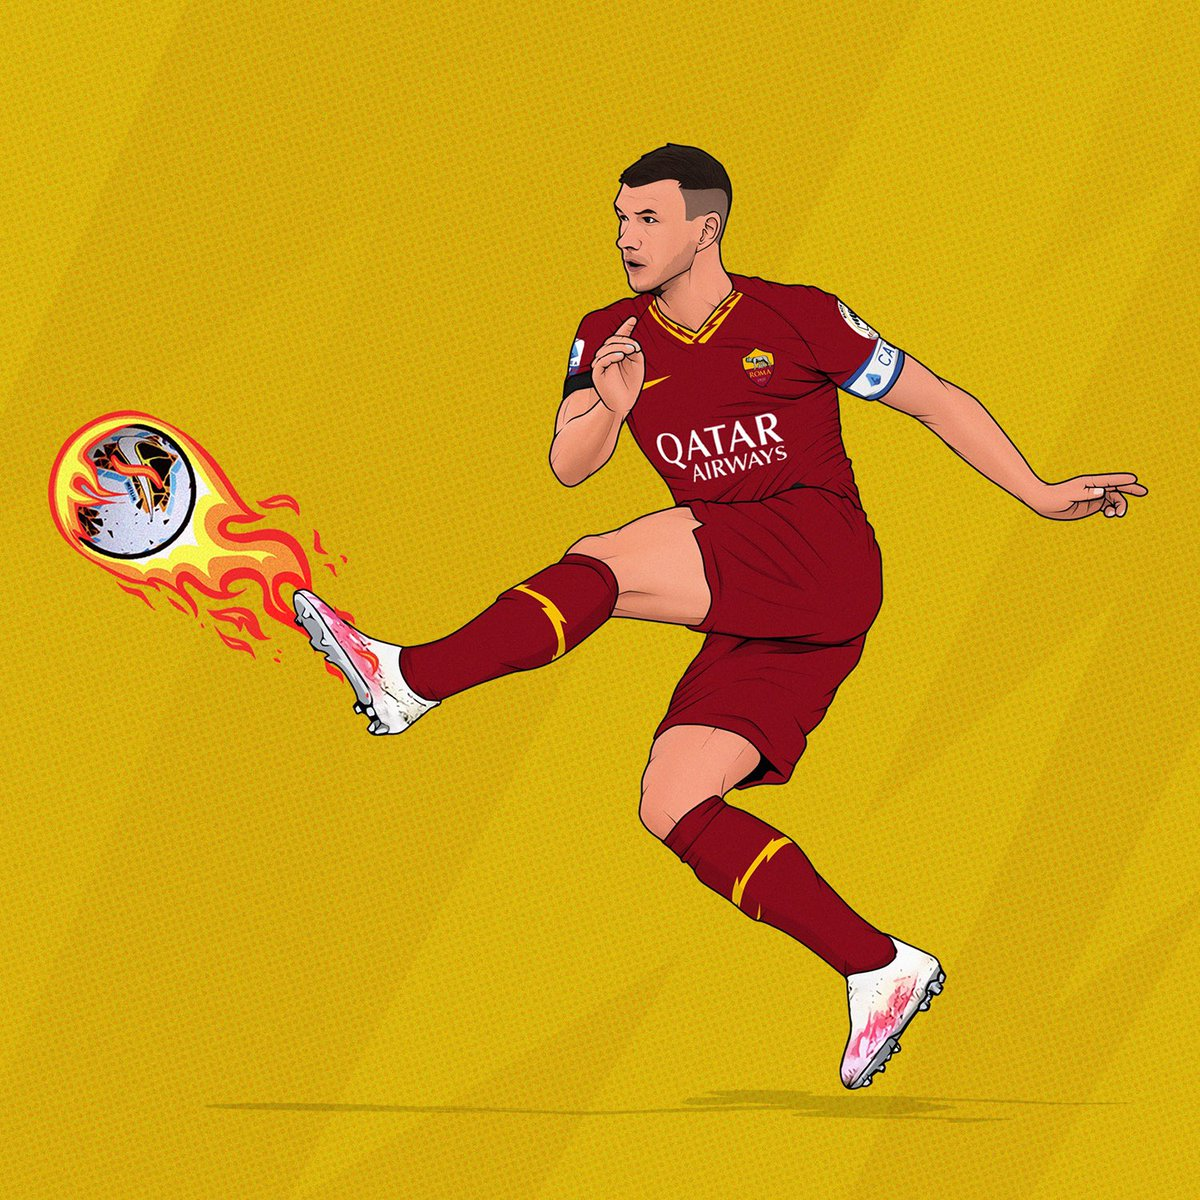 Perfect 🔥 Technique   #RomaArt🎨 by @vinnot86 https://t.co/wxYLGpHdAd